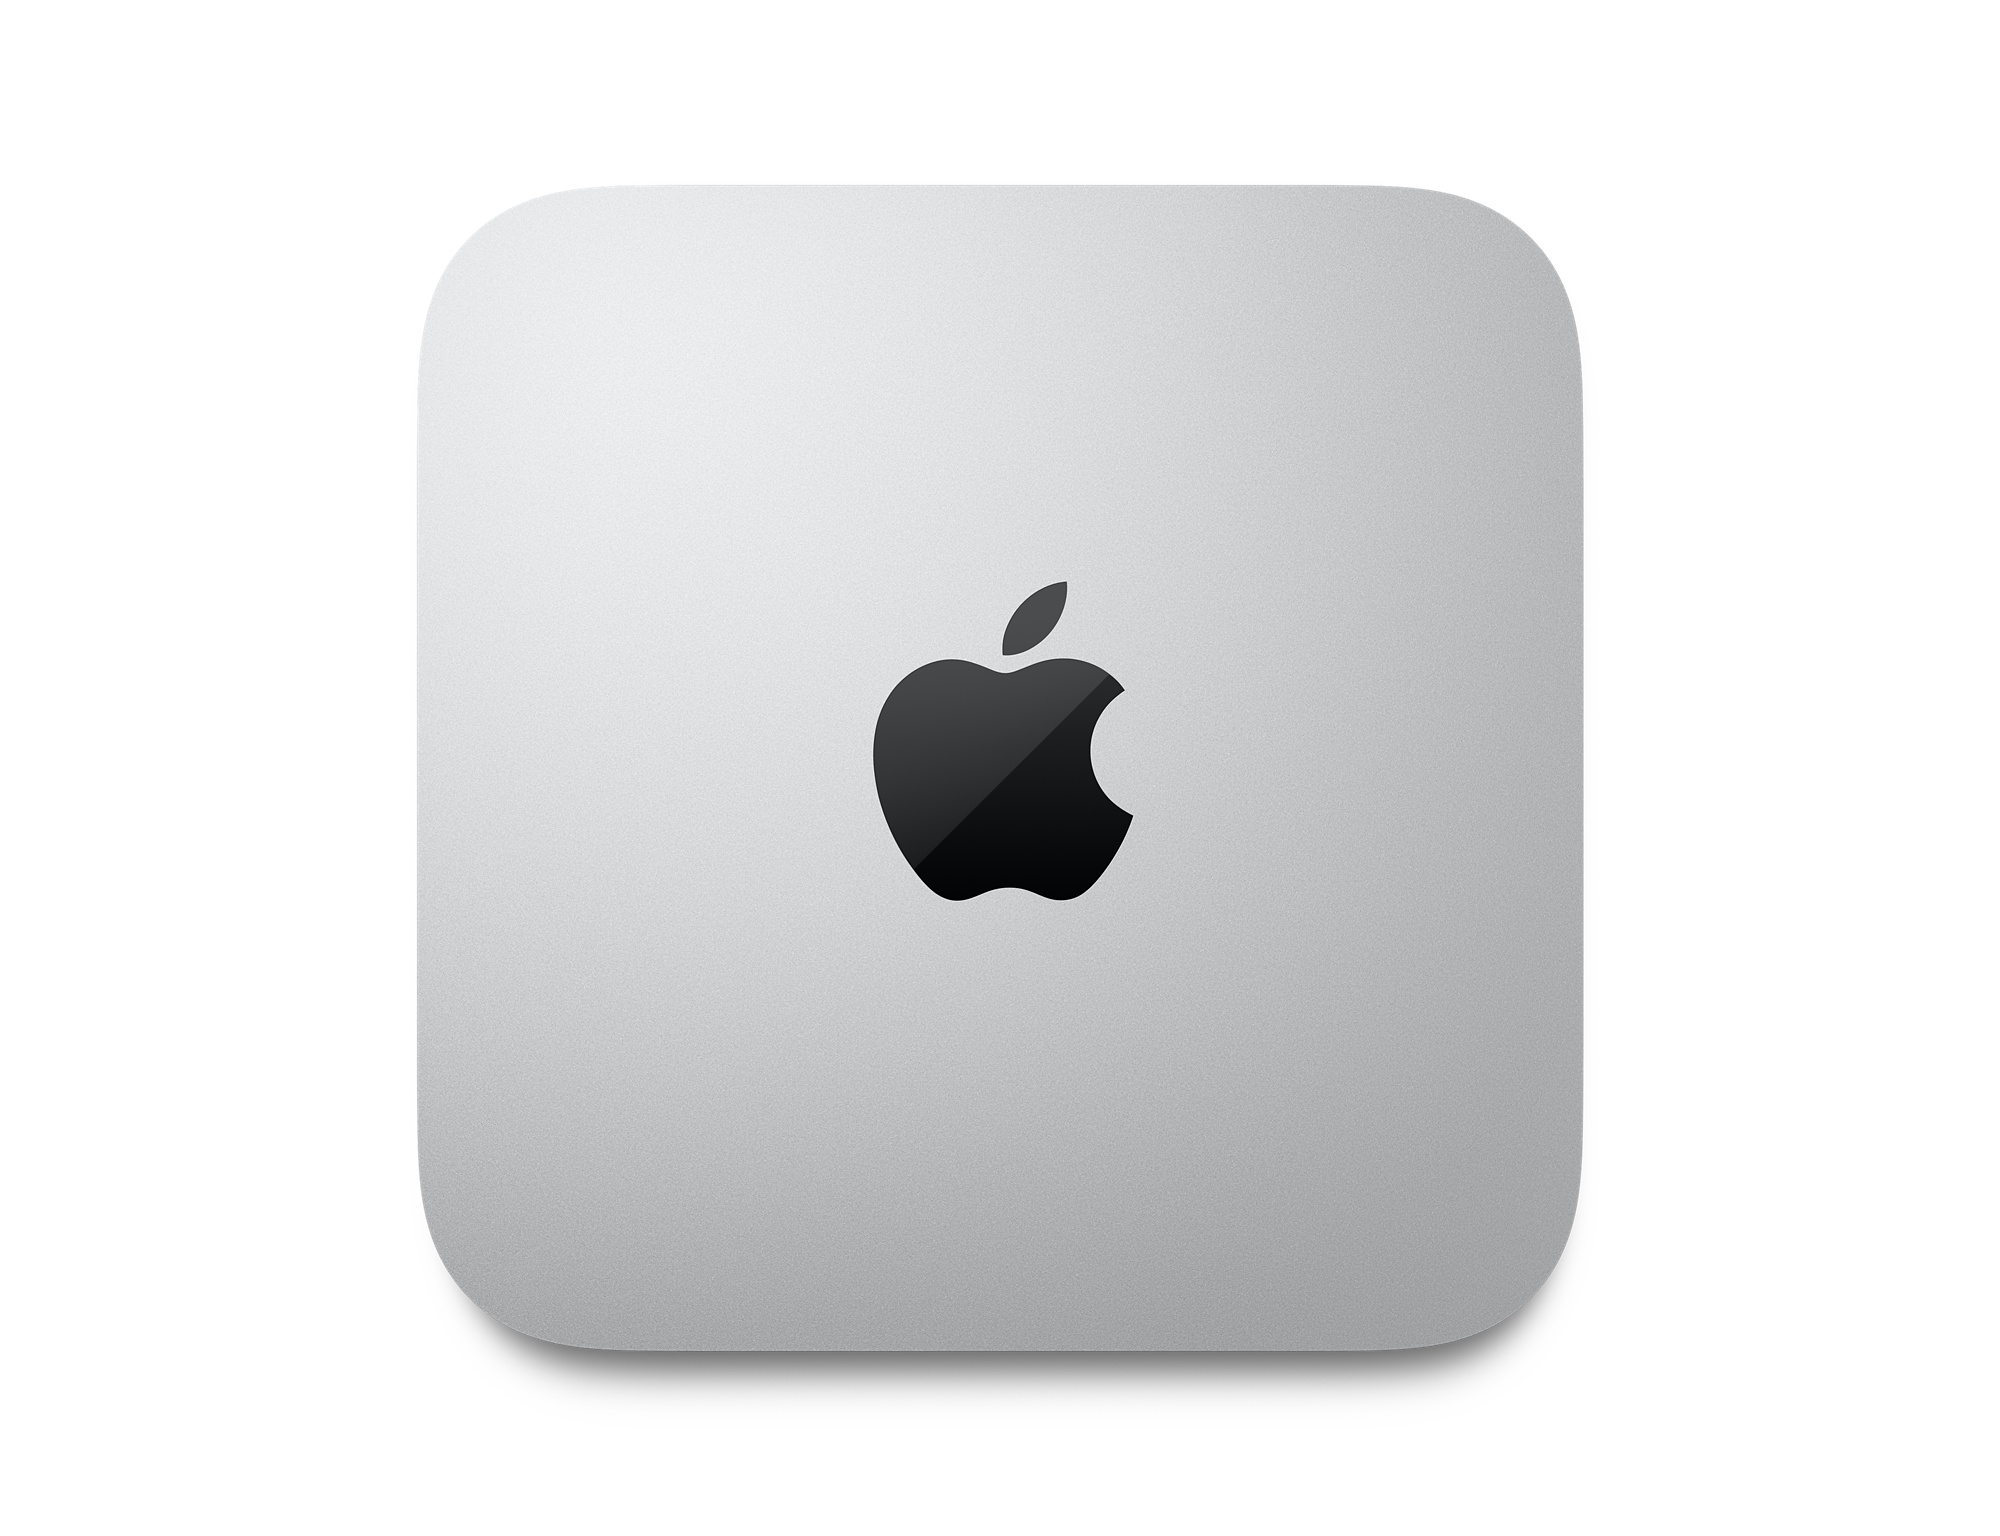 MAC MINI - Apple M1 Chip with 8-Core CPU and 8-Core GPU 256GB Storage